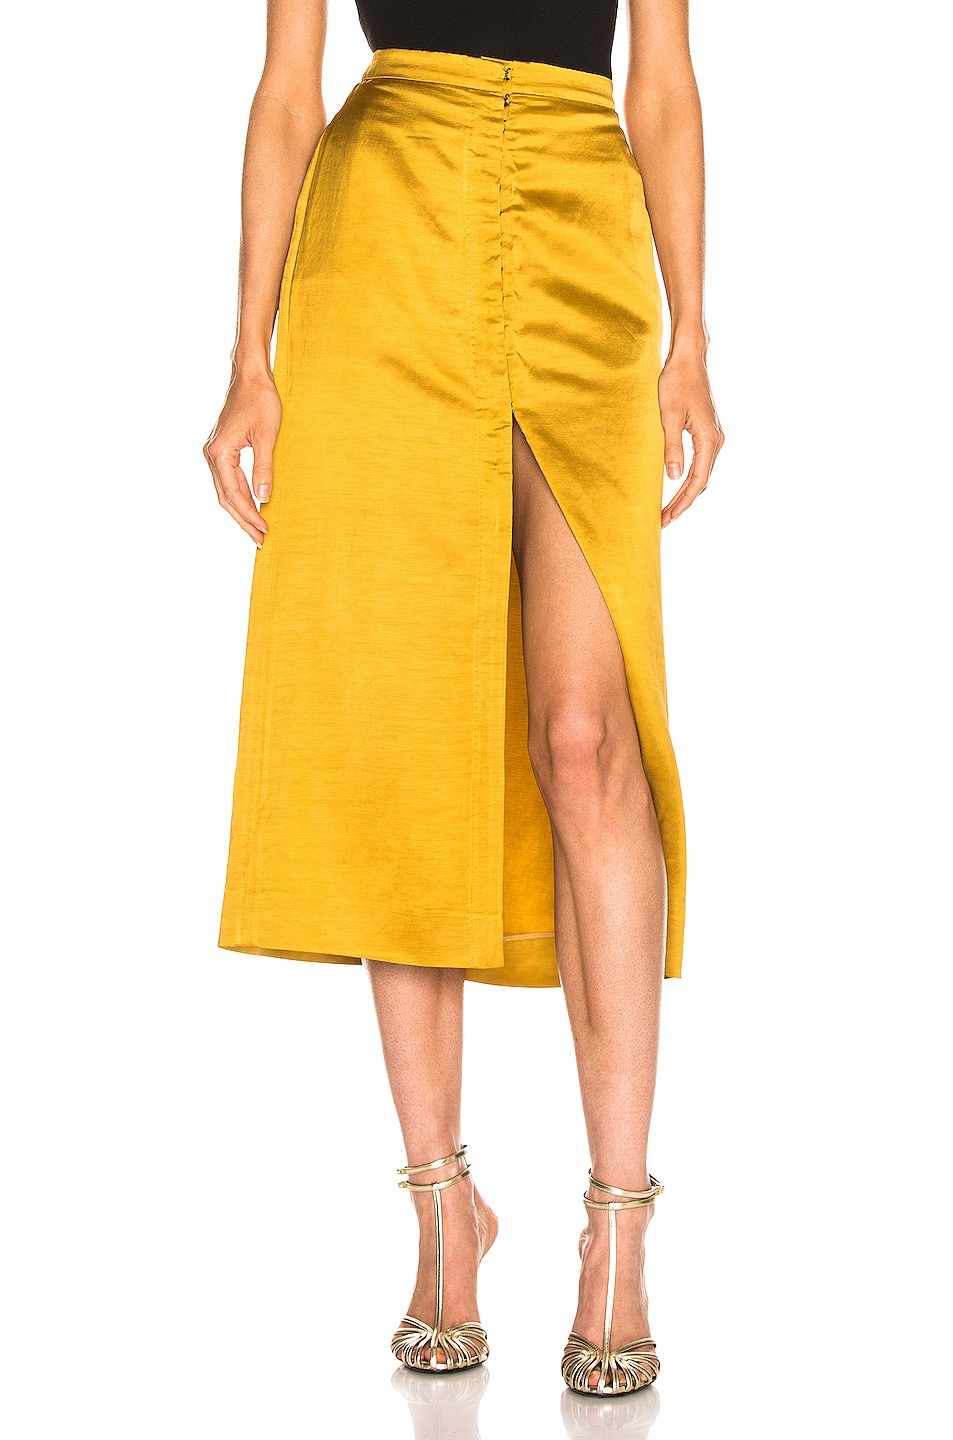 Image 1 of Brock Collection Objective Ladies Skirt in Medium Yellow